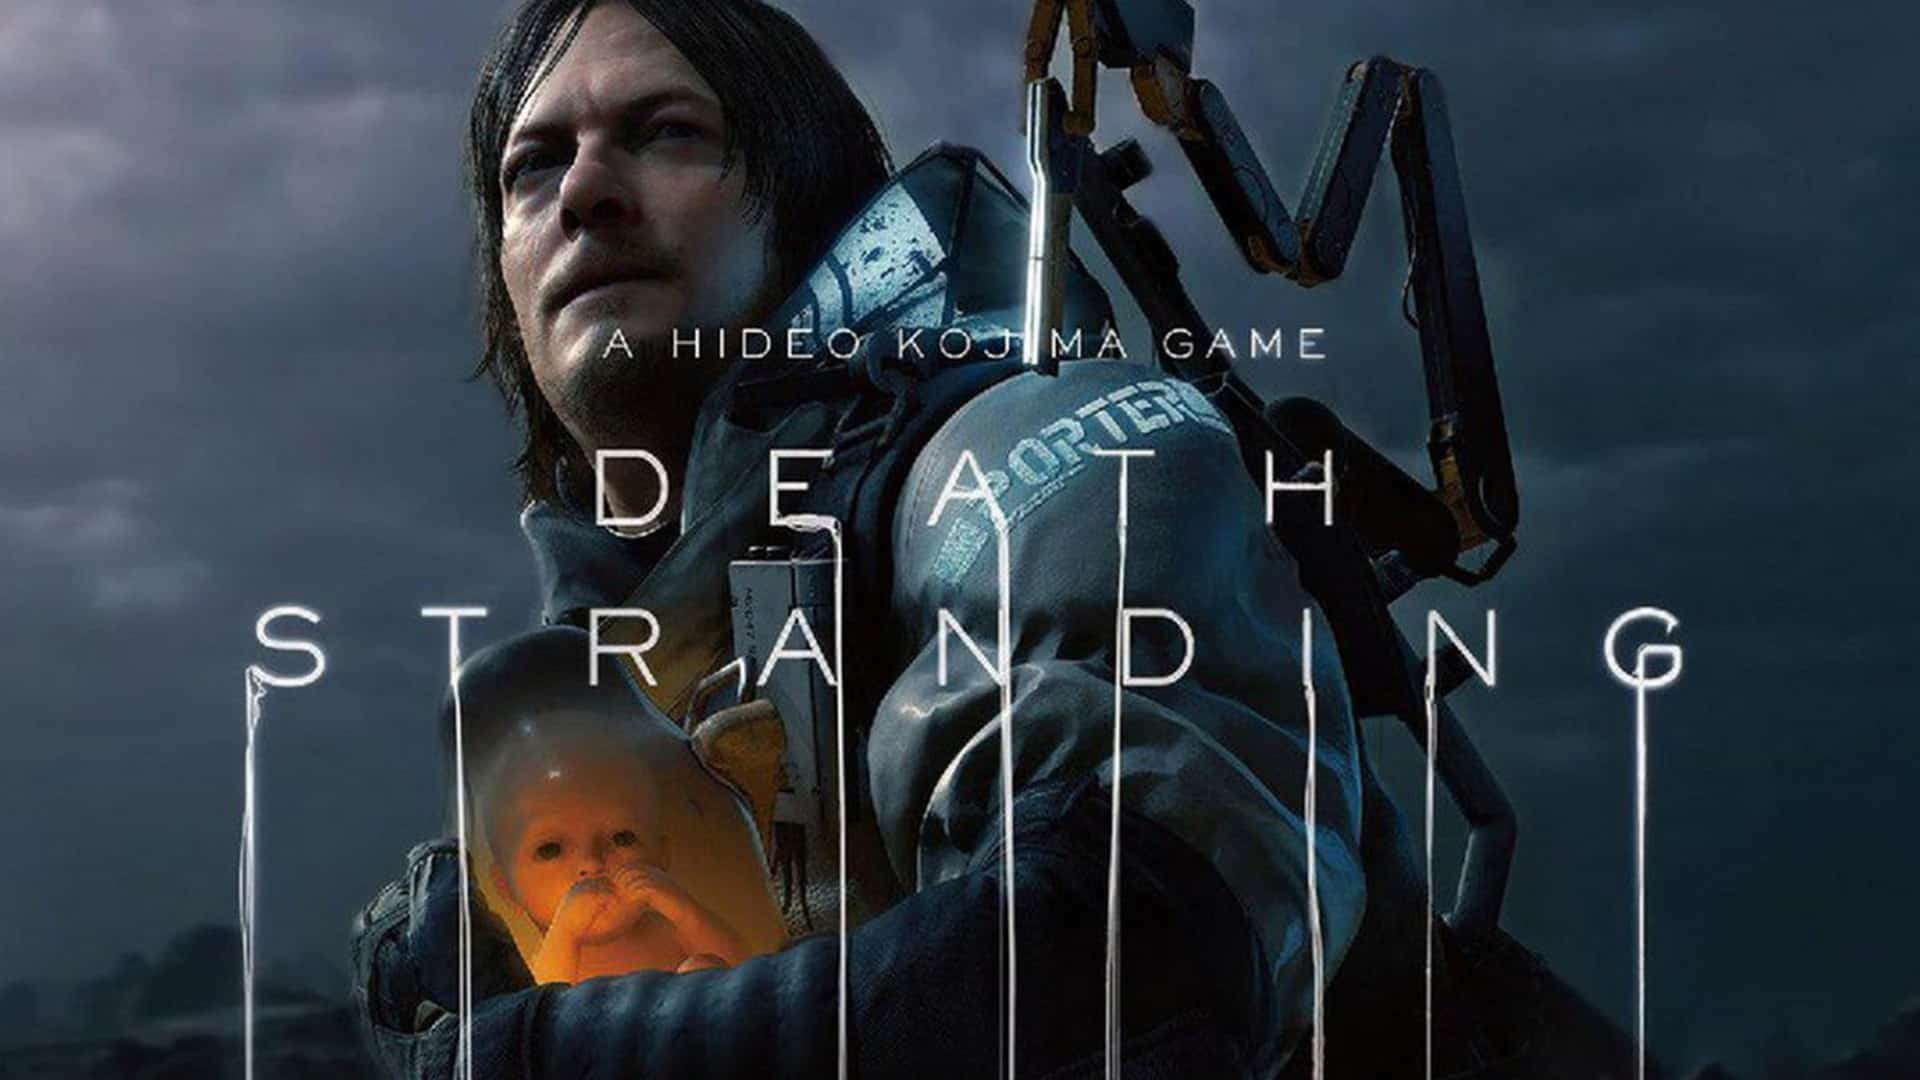 505 Games To Publish Hideo Kojima's 'Death Stranding' For PC